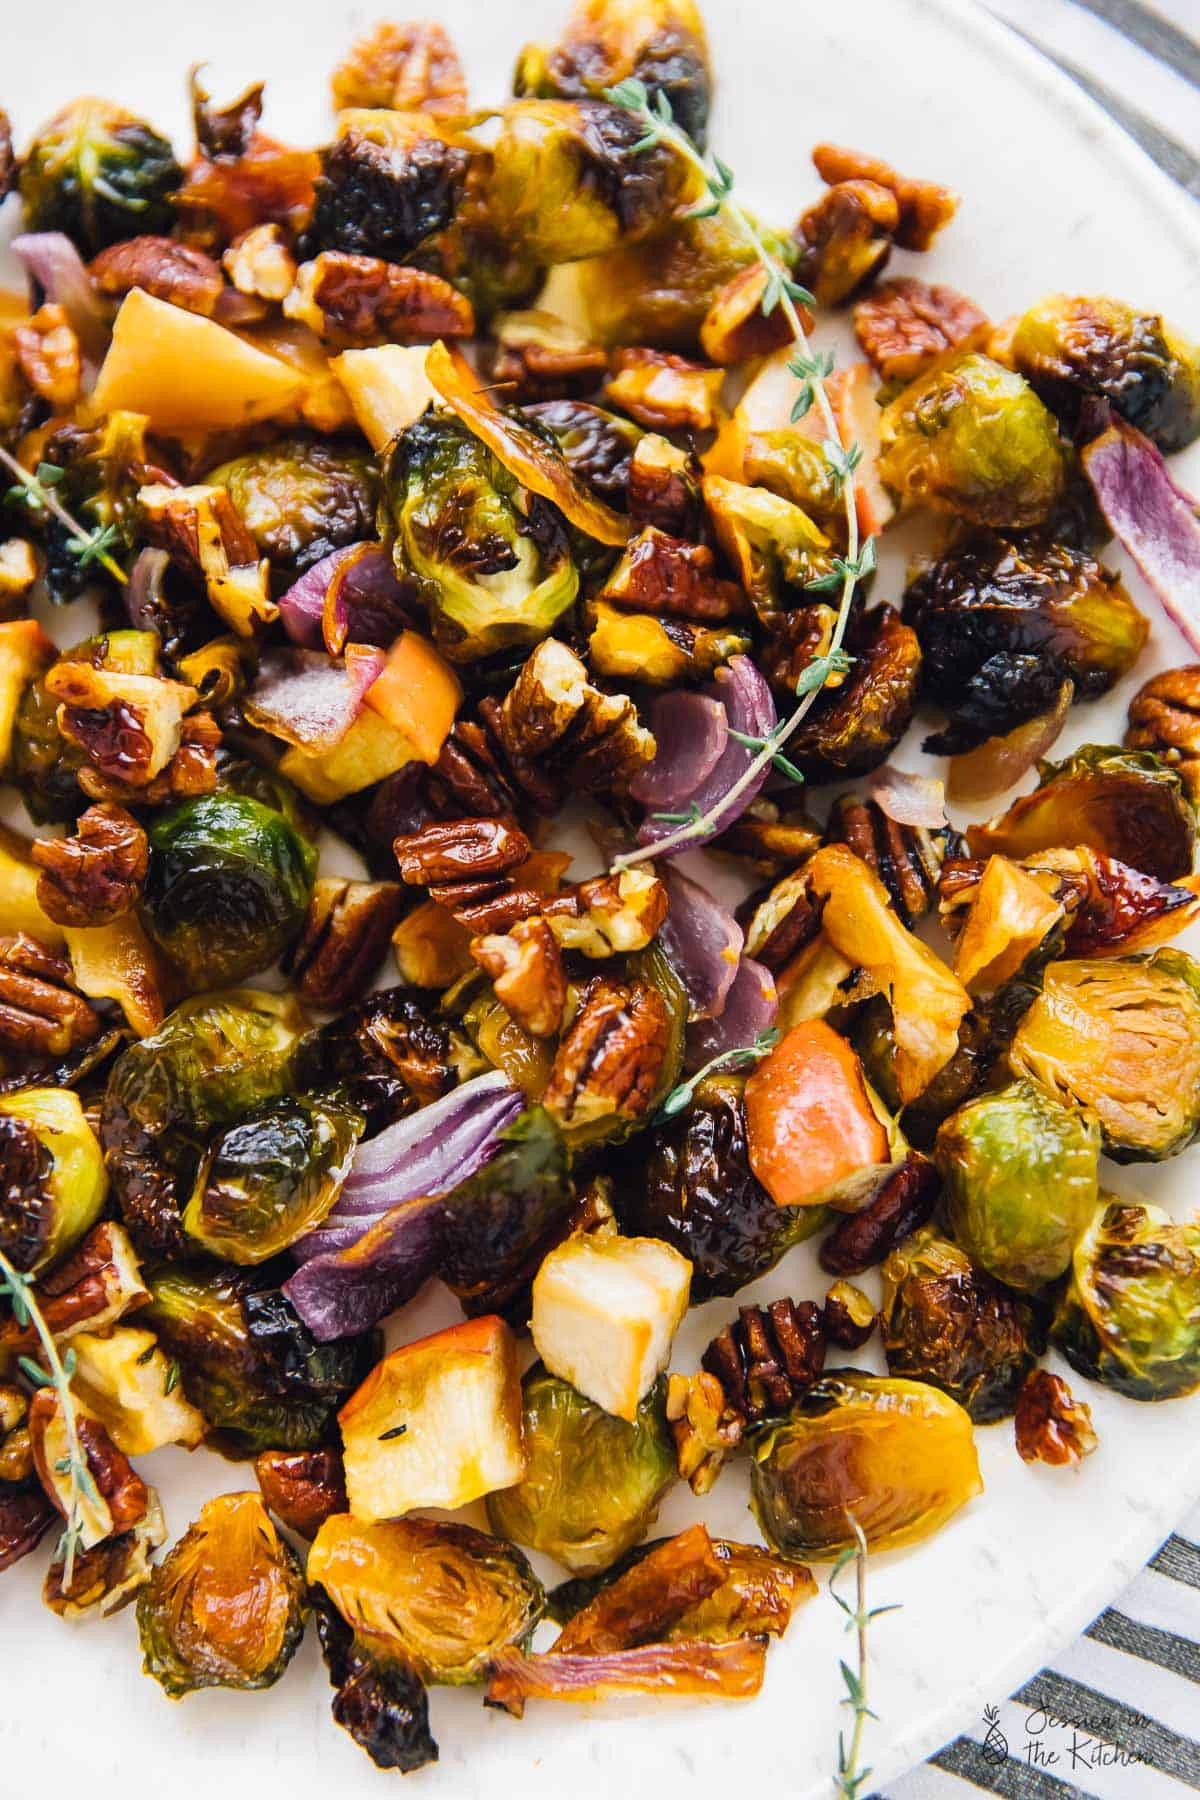 Top down view of maple roasted brussels sprouts with apples and pecans, on a big white plate.